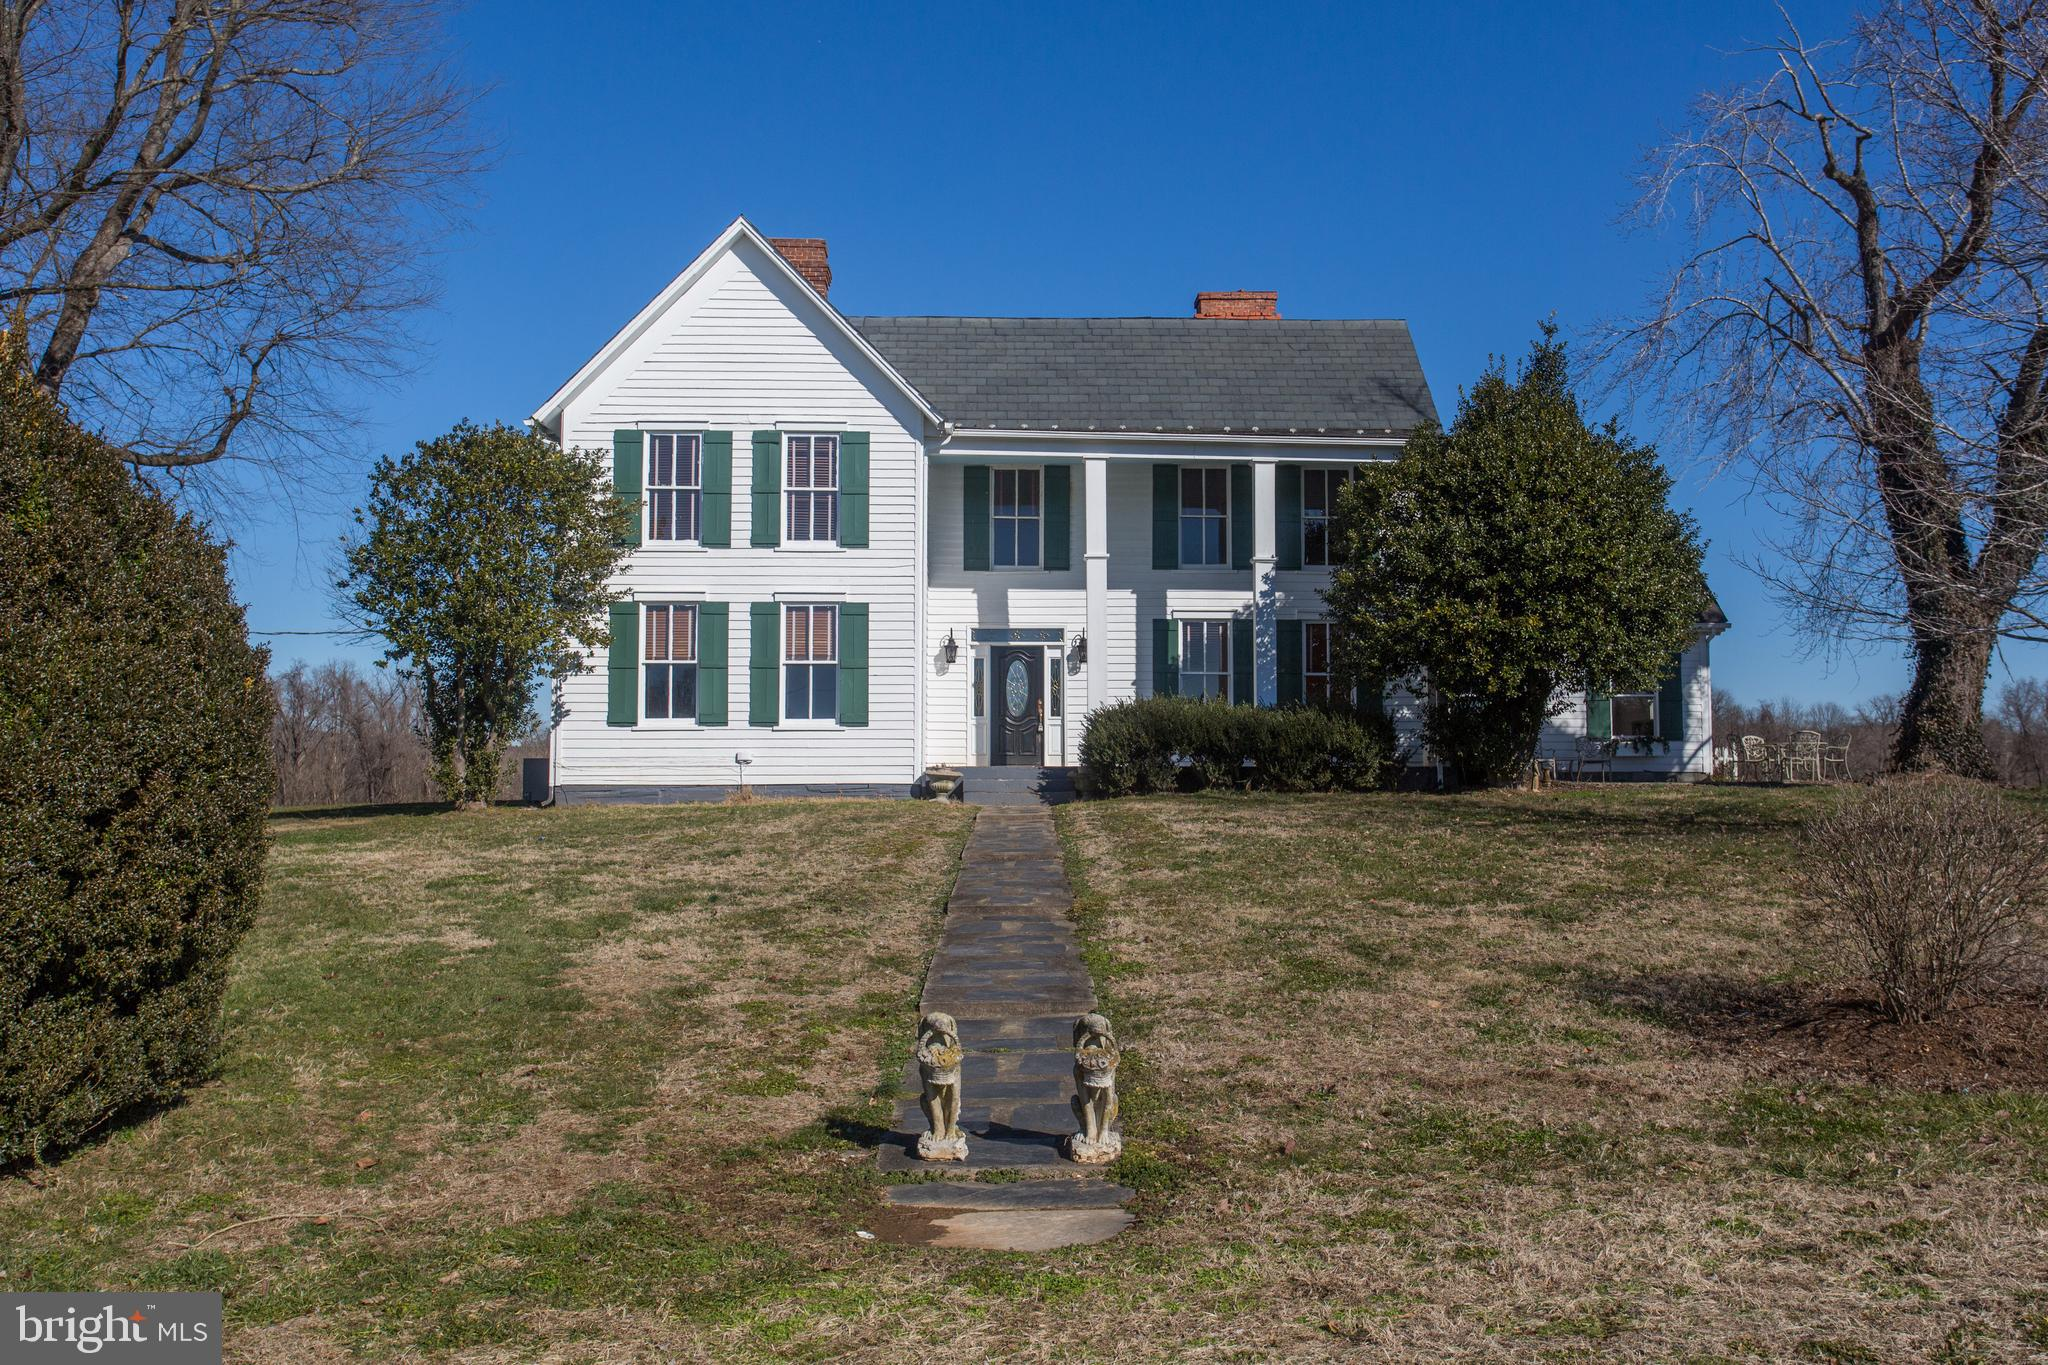 10335 BRIDGEPORT ROAD, ARVONIA, VA 23004